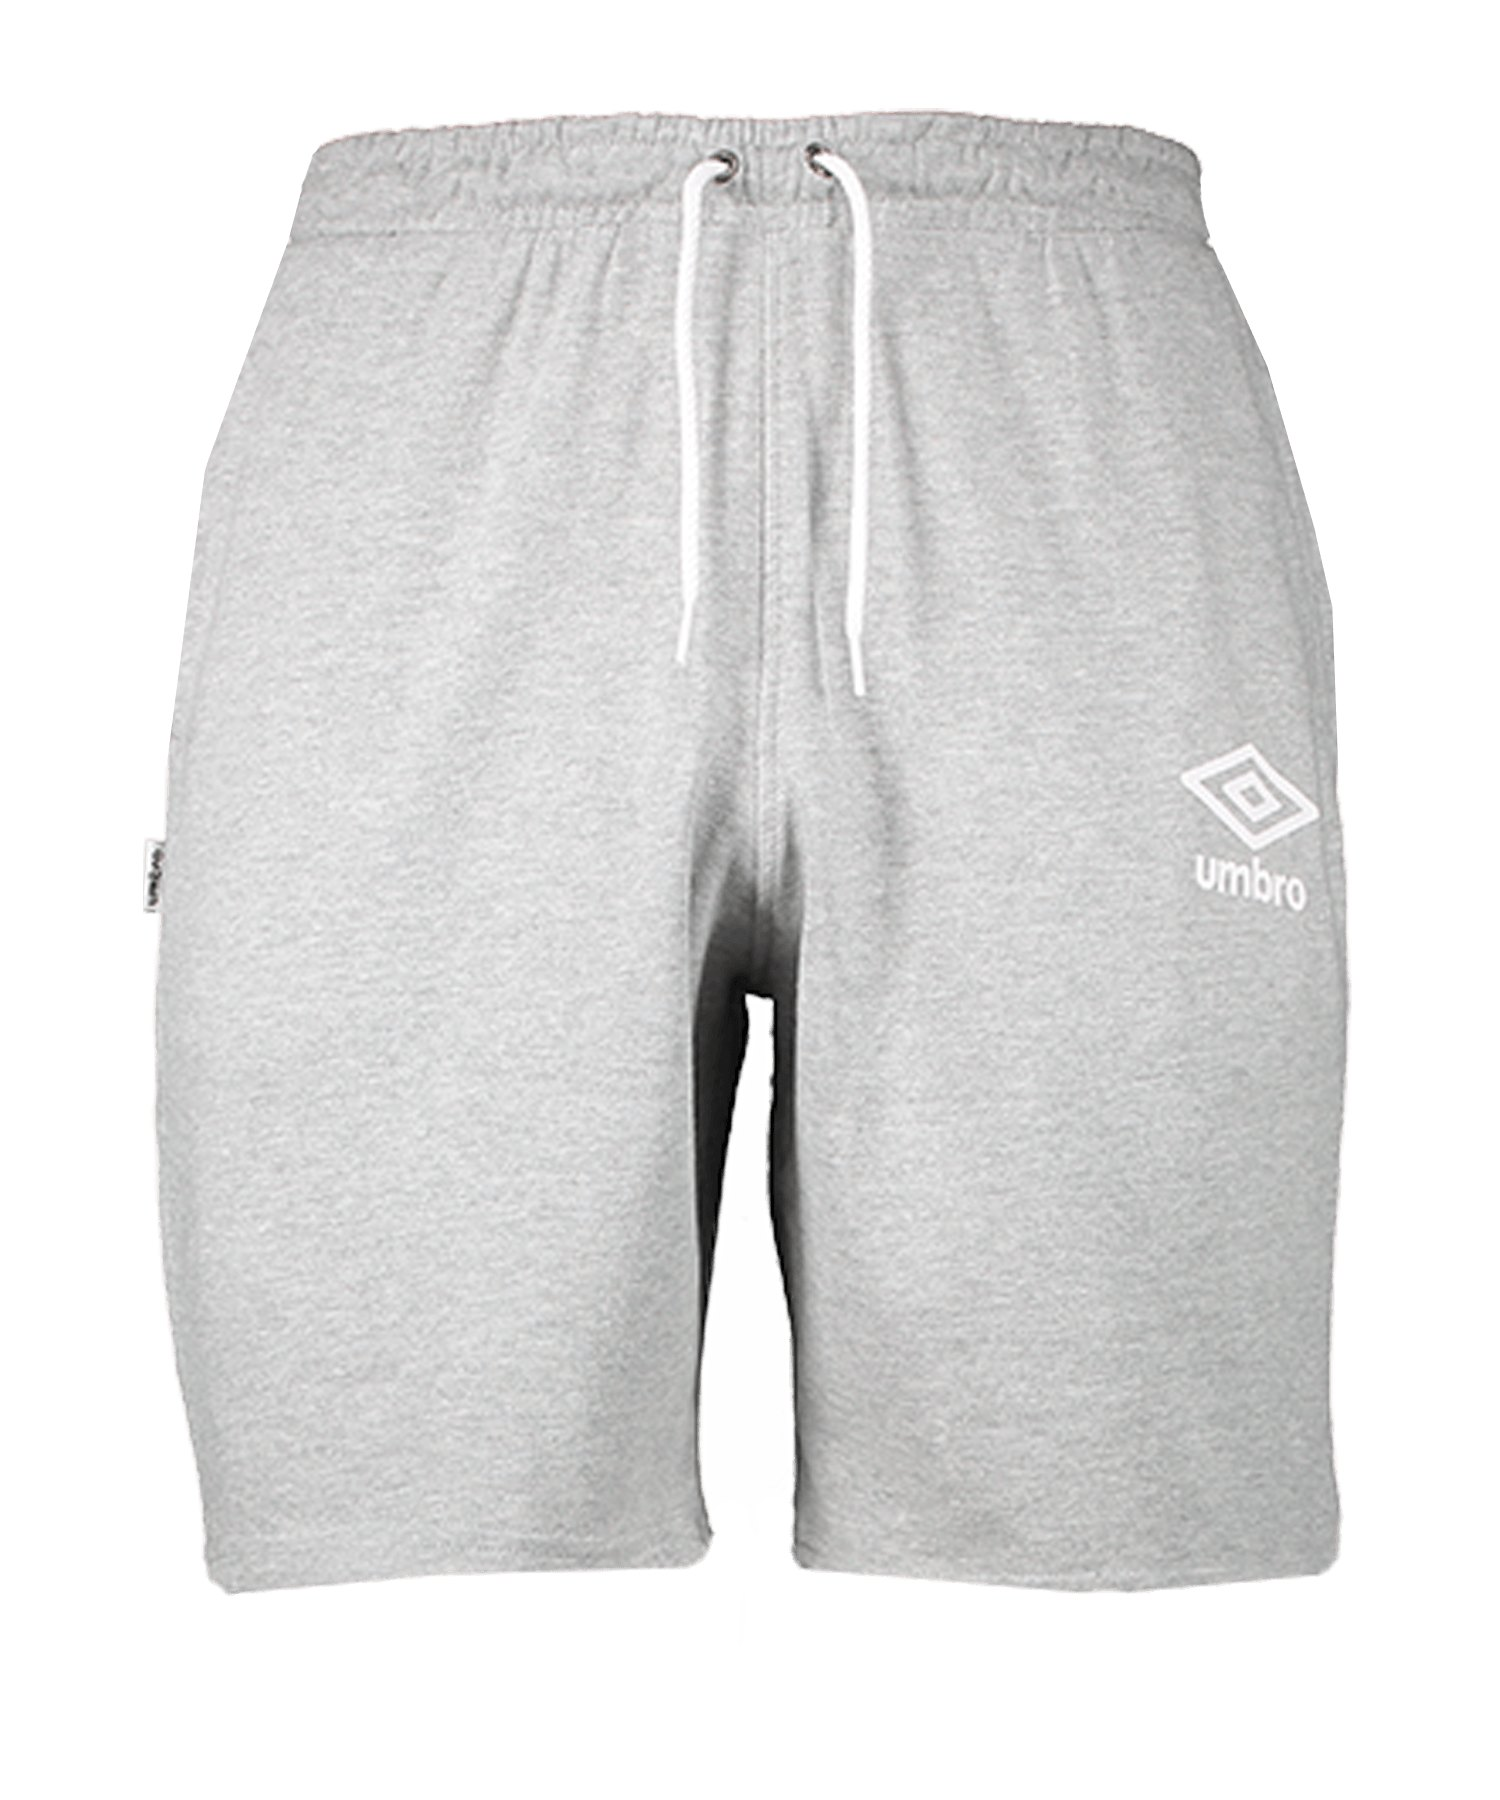 Umbro Fleece Short Grau F263 - grau